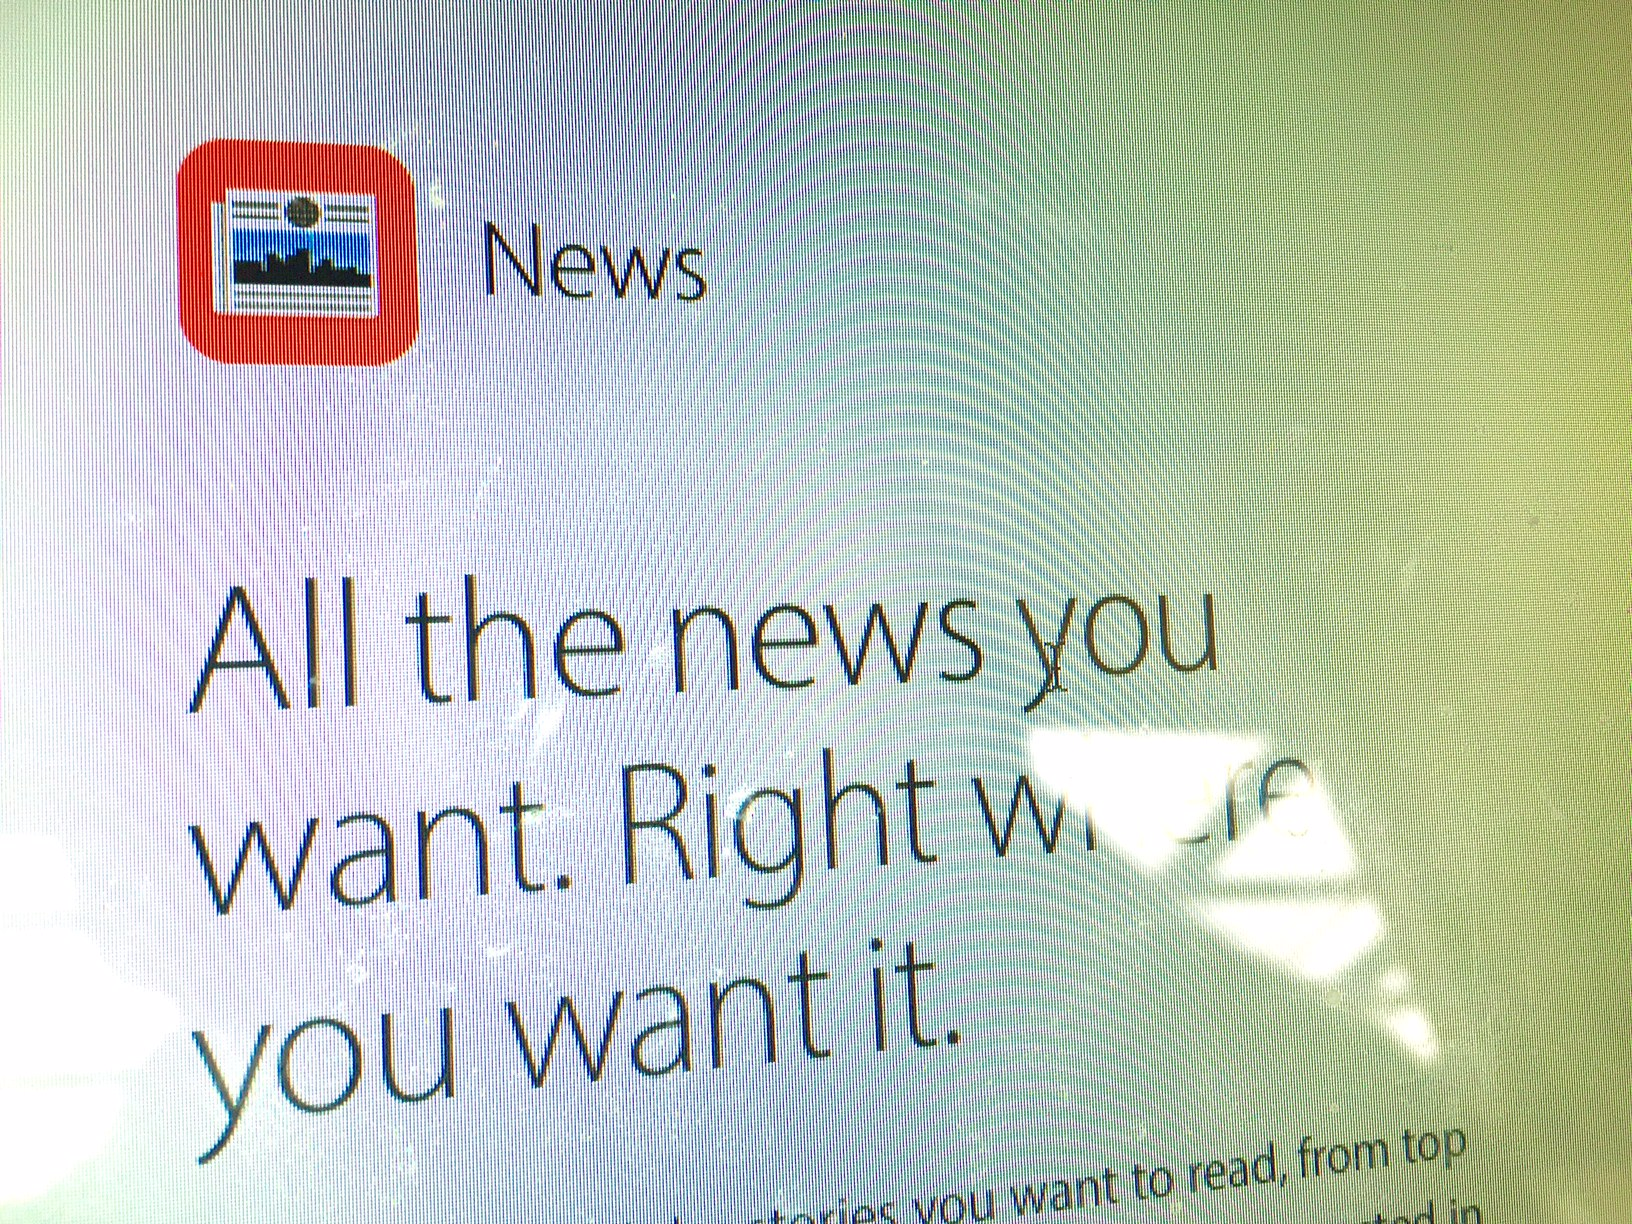 Apple News is available on iOS 9 and above